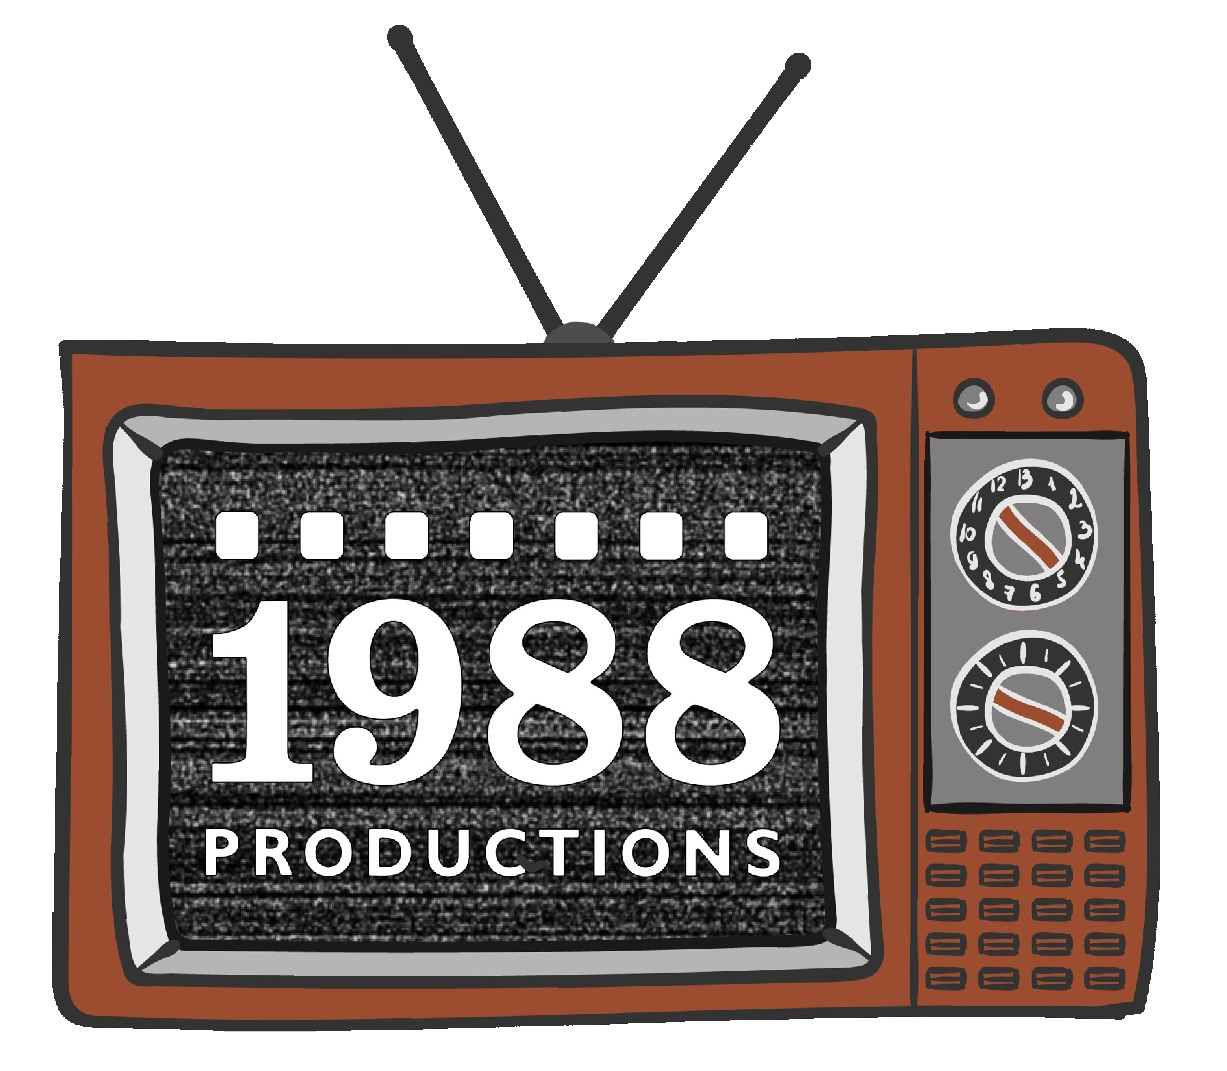 1988 Productions